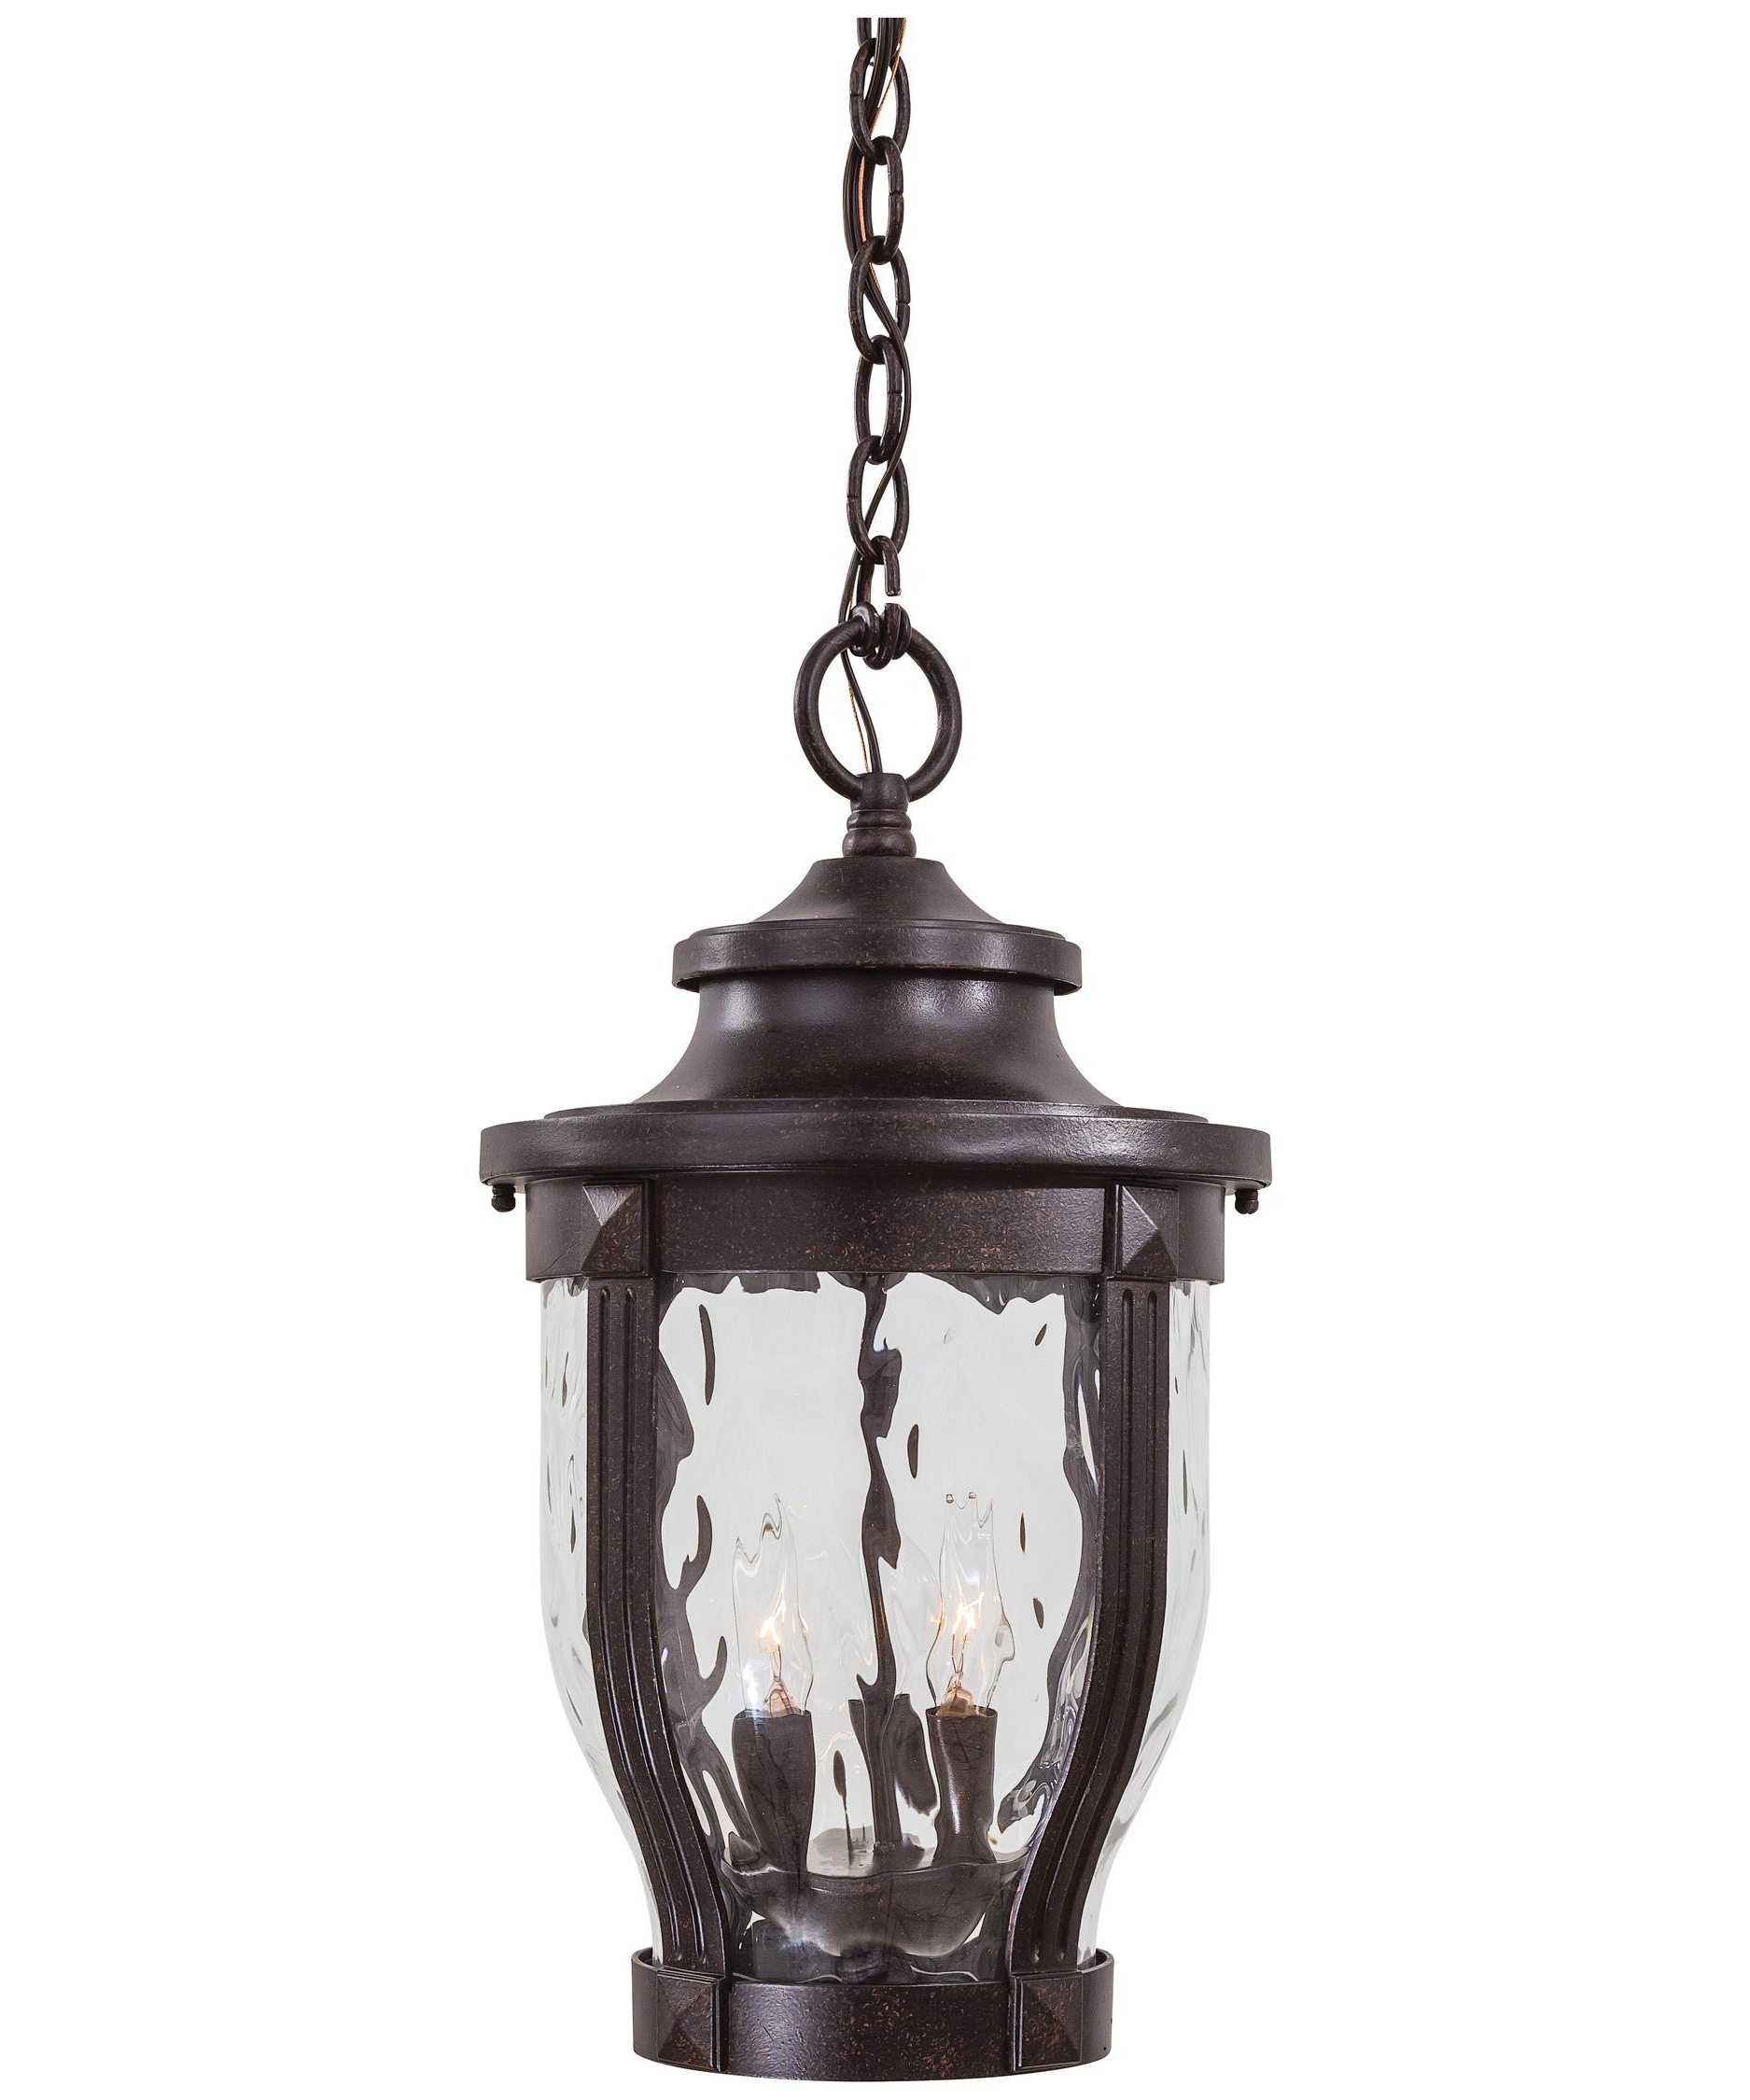 2018 Minka Lavery 8764 Merrimack 10 Inch Wide 3 Light Outdoor Hanging Throughout Outdoor Hanging Ceiling Lights (View 12 of 20)